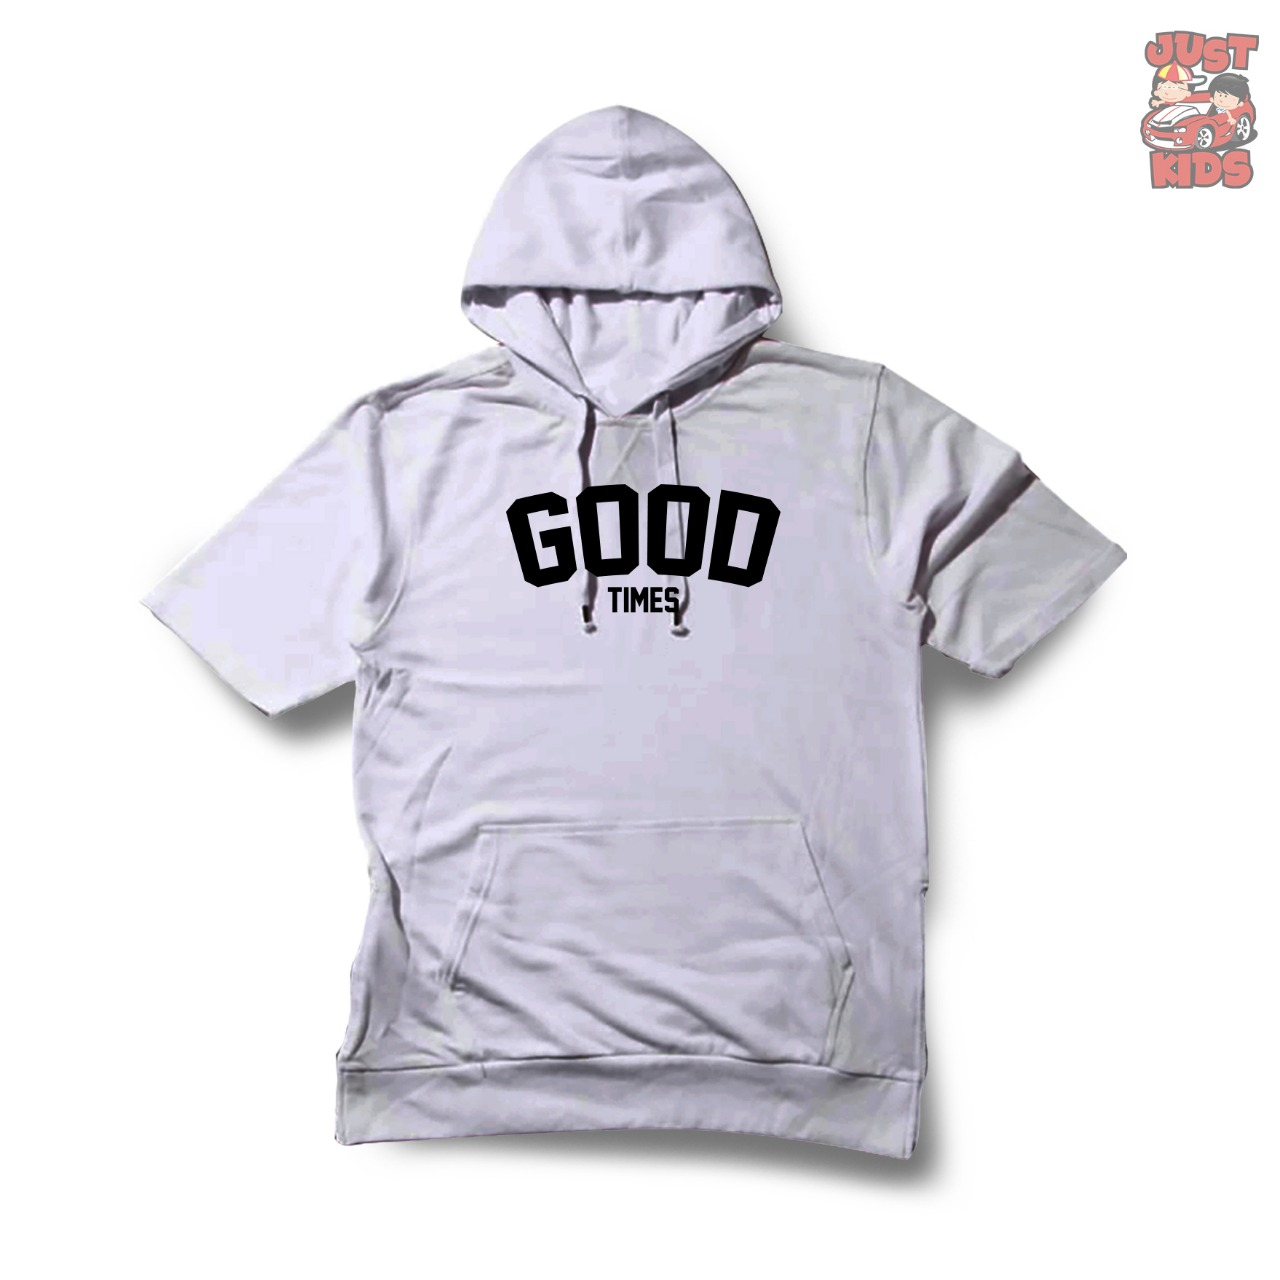 HODIE JUST KIDS (GOOD TIMES) (ANKL00106)